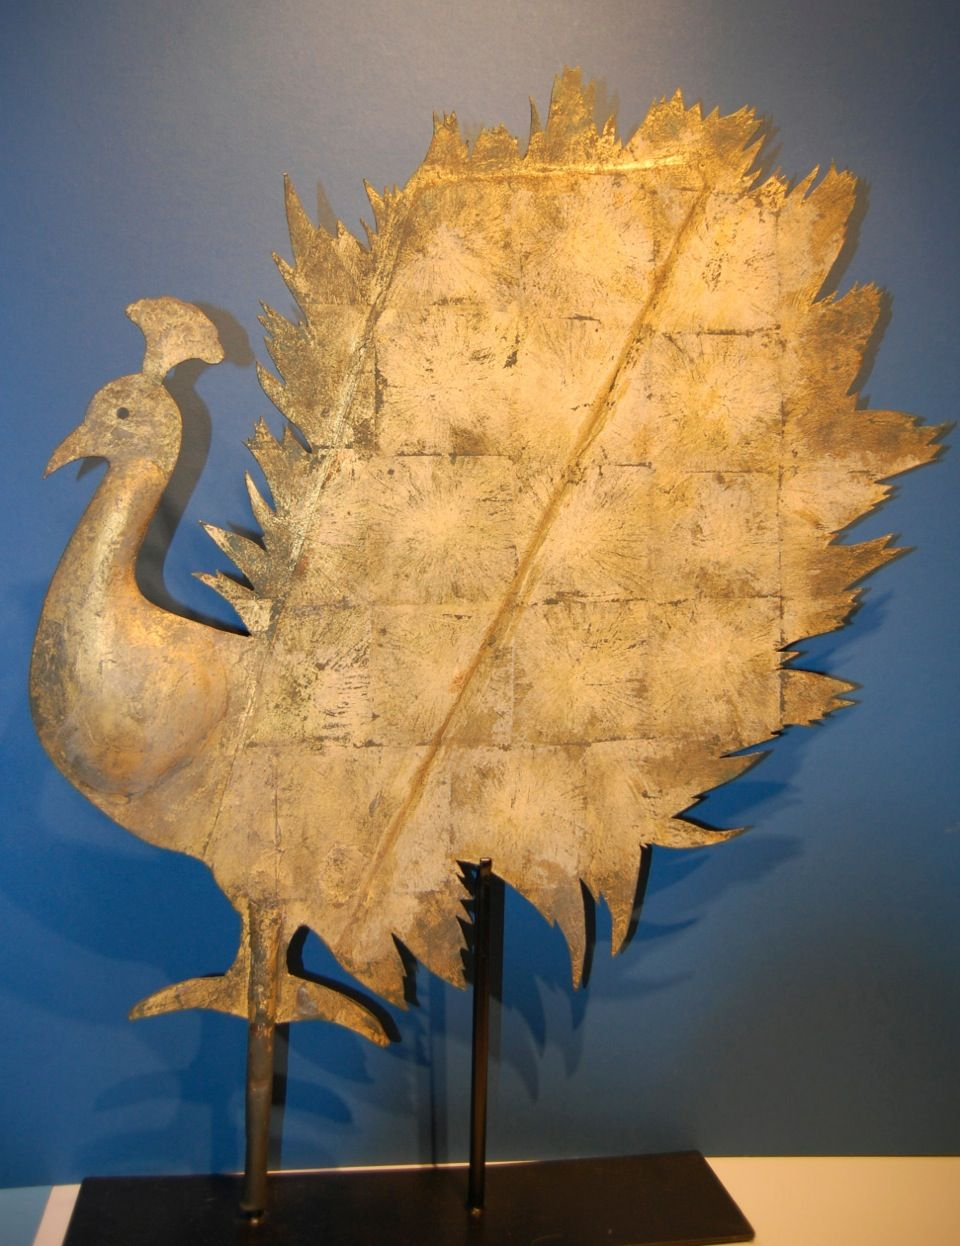 """Fabulous Peacock Weathervane by the Jewell Co.c 1865-1875. Cast zinc body with a very heavy gauge copper tail. The fantastic tail is highlighted by the worn squared gold leafing. It retains several patinas but has heavy elements of a second gold leafing. This weathervane surfaced about 25-27 years ago from a farm in Central Maine and has been in a private family collection ever since. Measures 21"""" ht x 26"""" front to back. Museum mounted. Call Jeanne for pricing on 845.505.1147"""